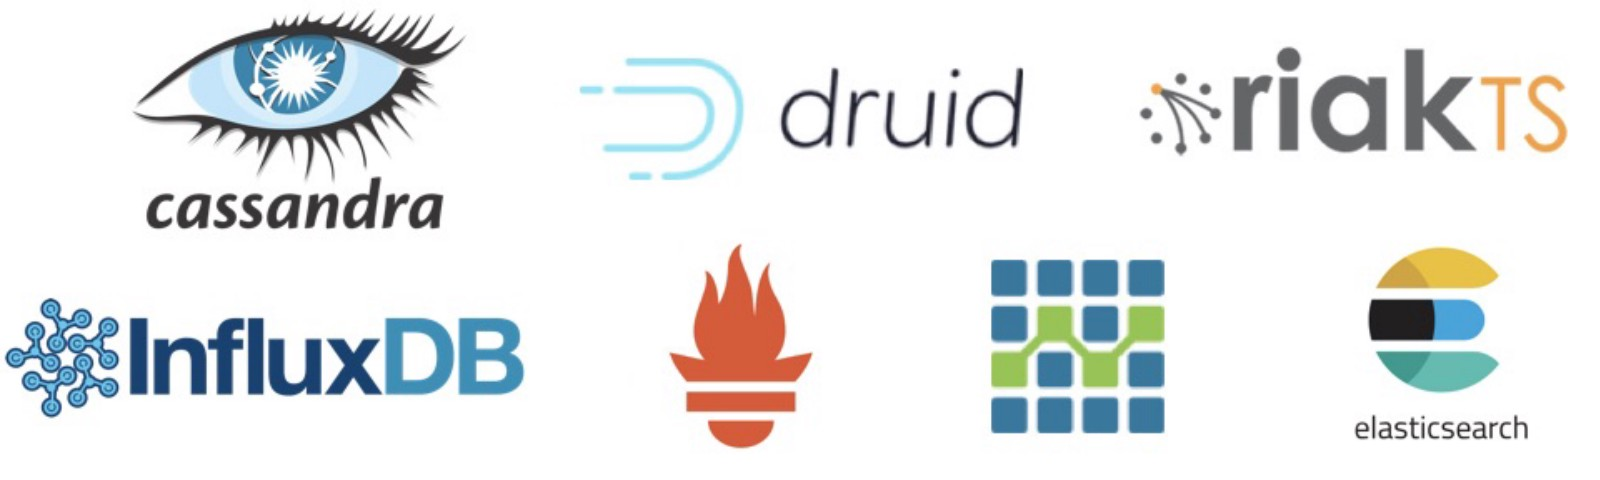 A Comparison of Time Series Databases and Netsil's Use of Druid